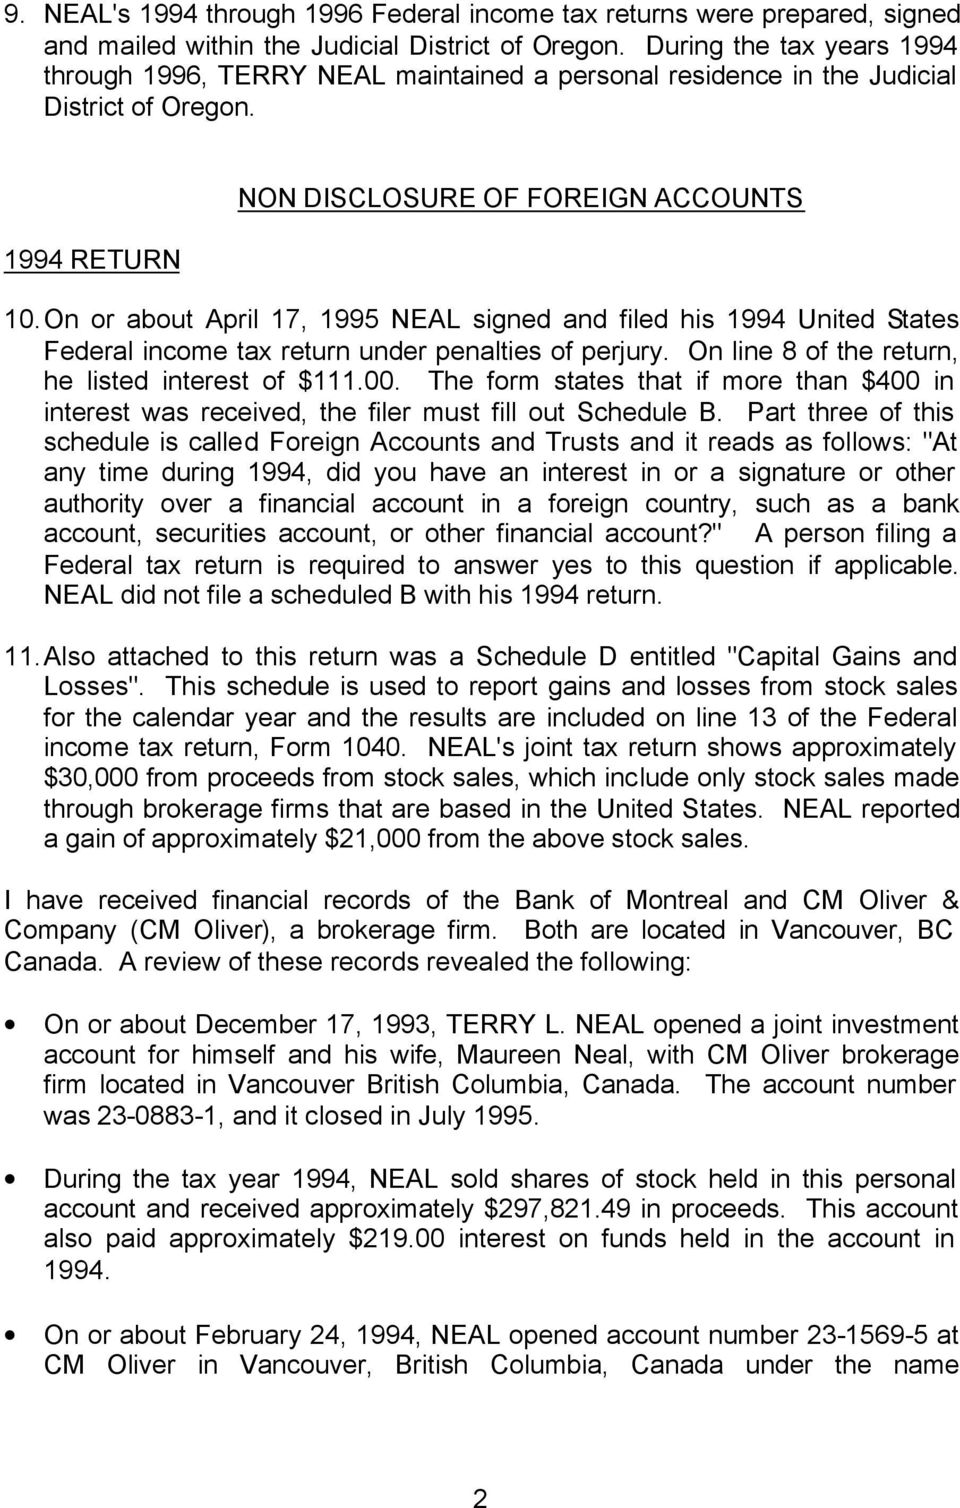 On or about April 17, 1995 NEAL signed and filed his 1994 United States Federal income tax return under penalties of perjury. On line 8 of the return, he listed interest of $111.00.